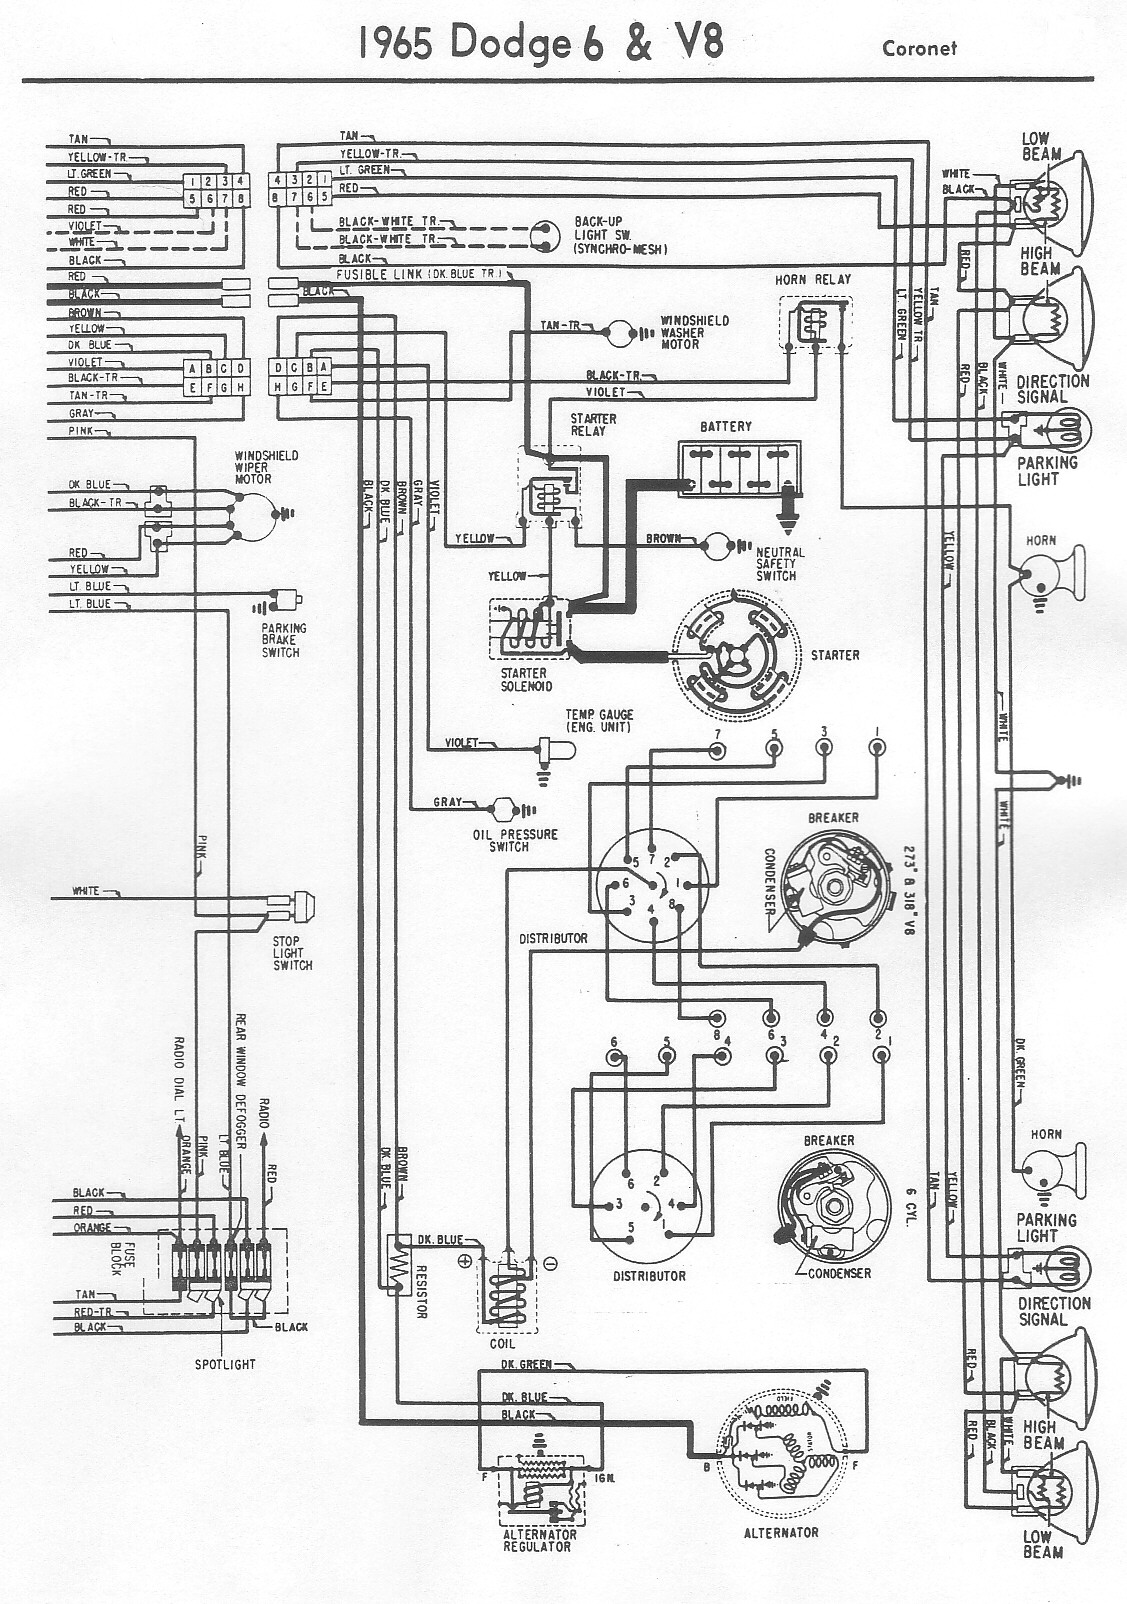 1965 Mustang Fuse Panel. Diagram. Wiring Diagram Images